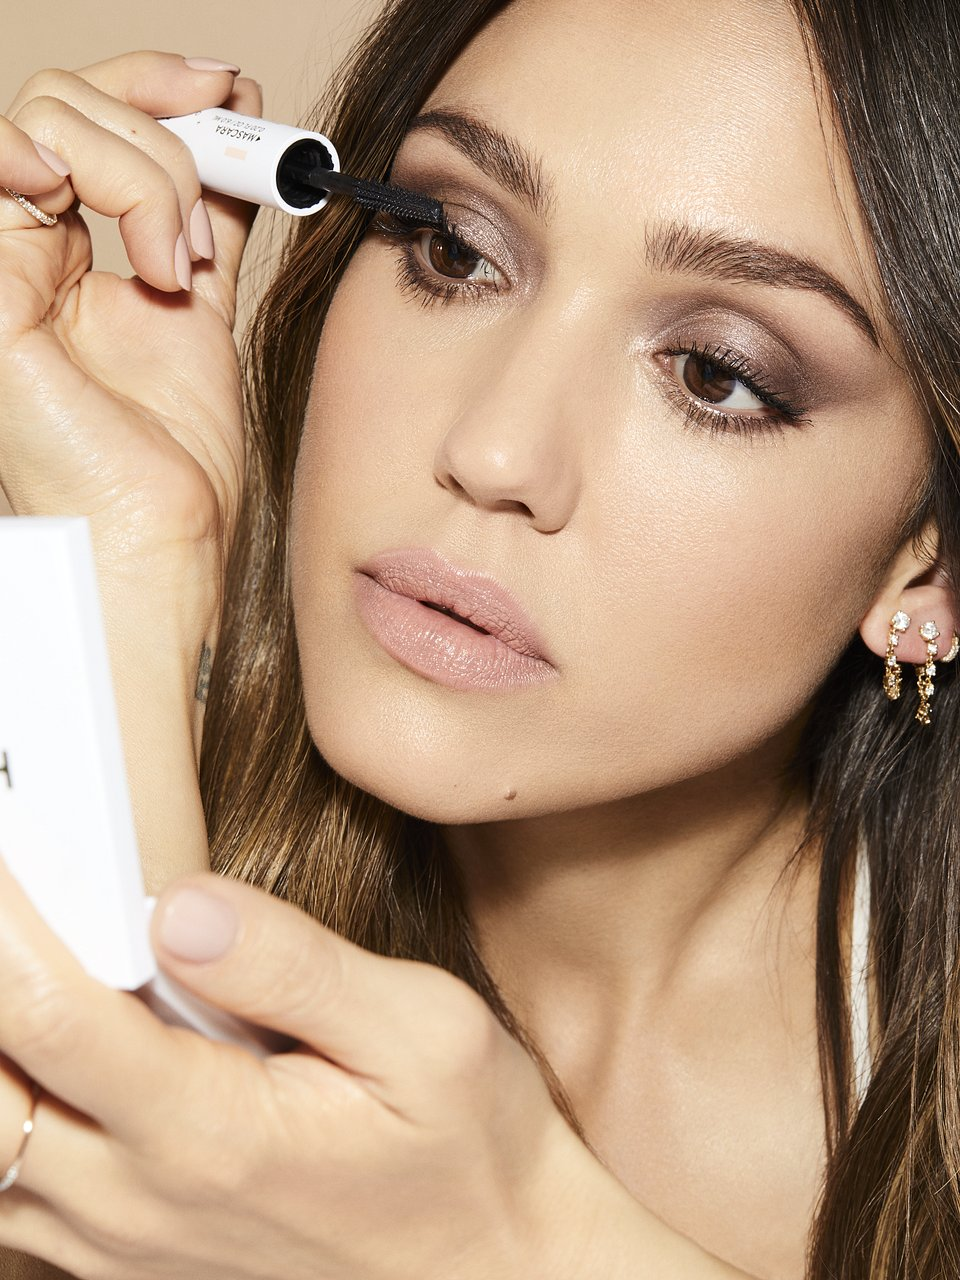 makeup-beautyvisual-honestbeauty-jessica-alba-extreme-length-mascara-0421.tif